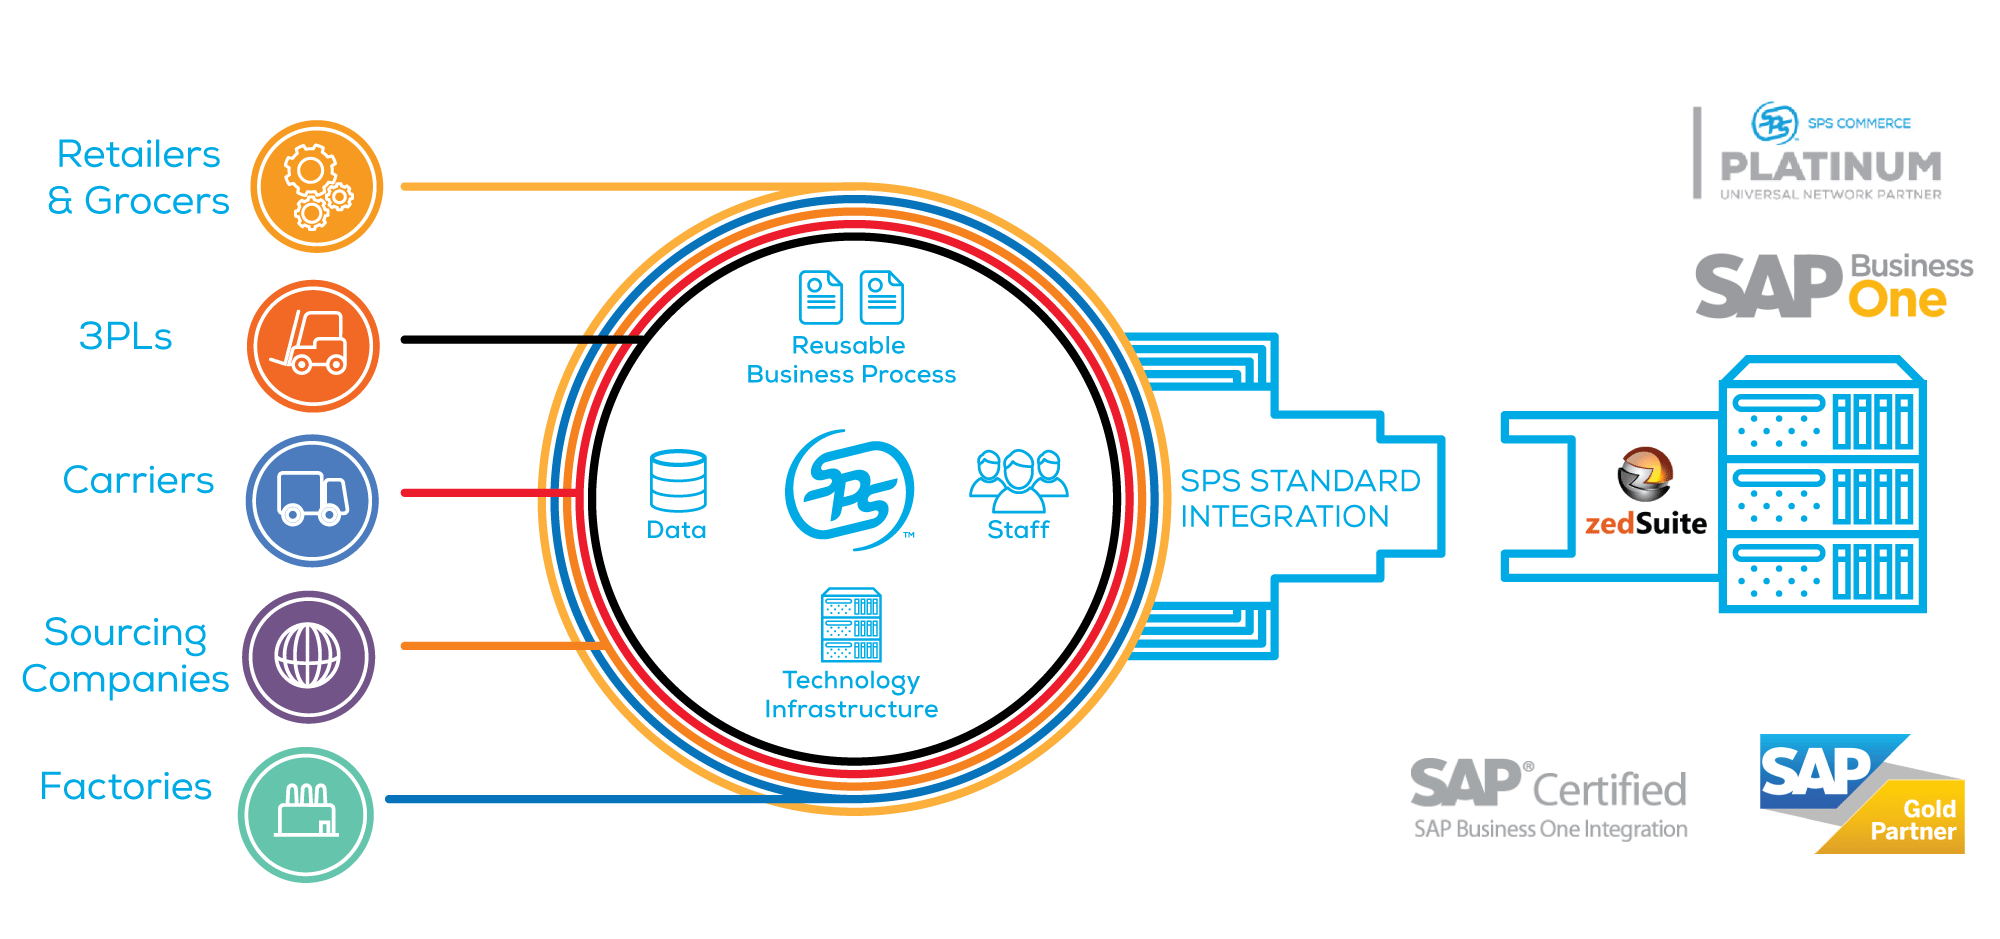 Our comprehensive, leading integration options give you the power to collaborate with high-volume trading partners flawlessly, without sacrificing the customizability and ease of use that SAP Business One provides.